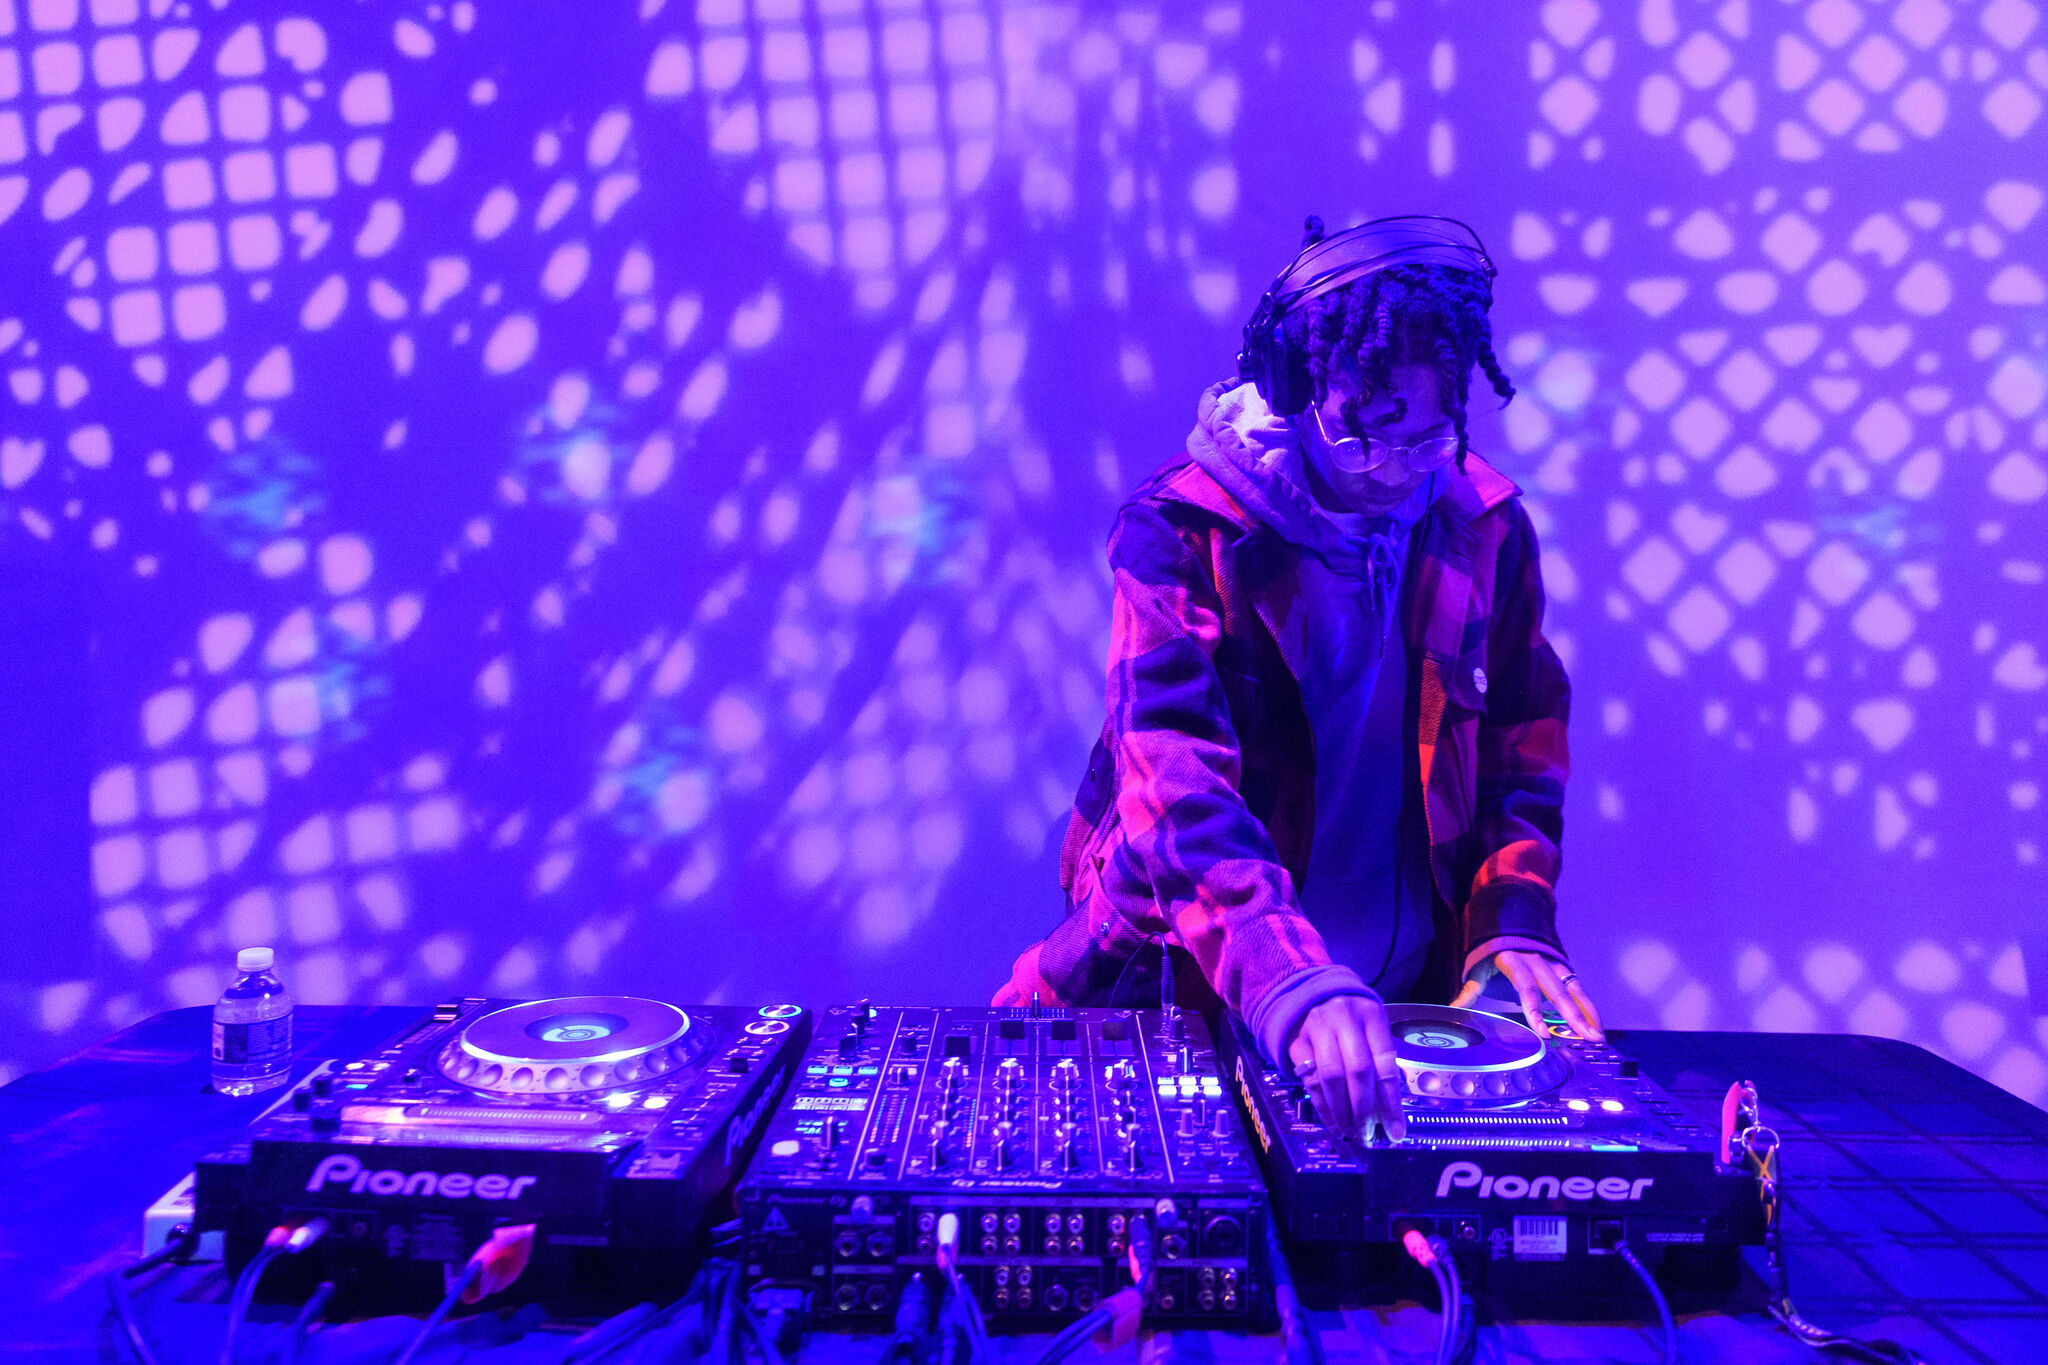 A DJ playing in a purple-lit room.